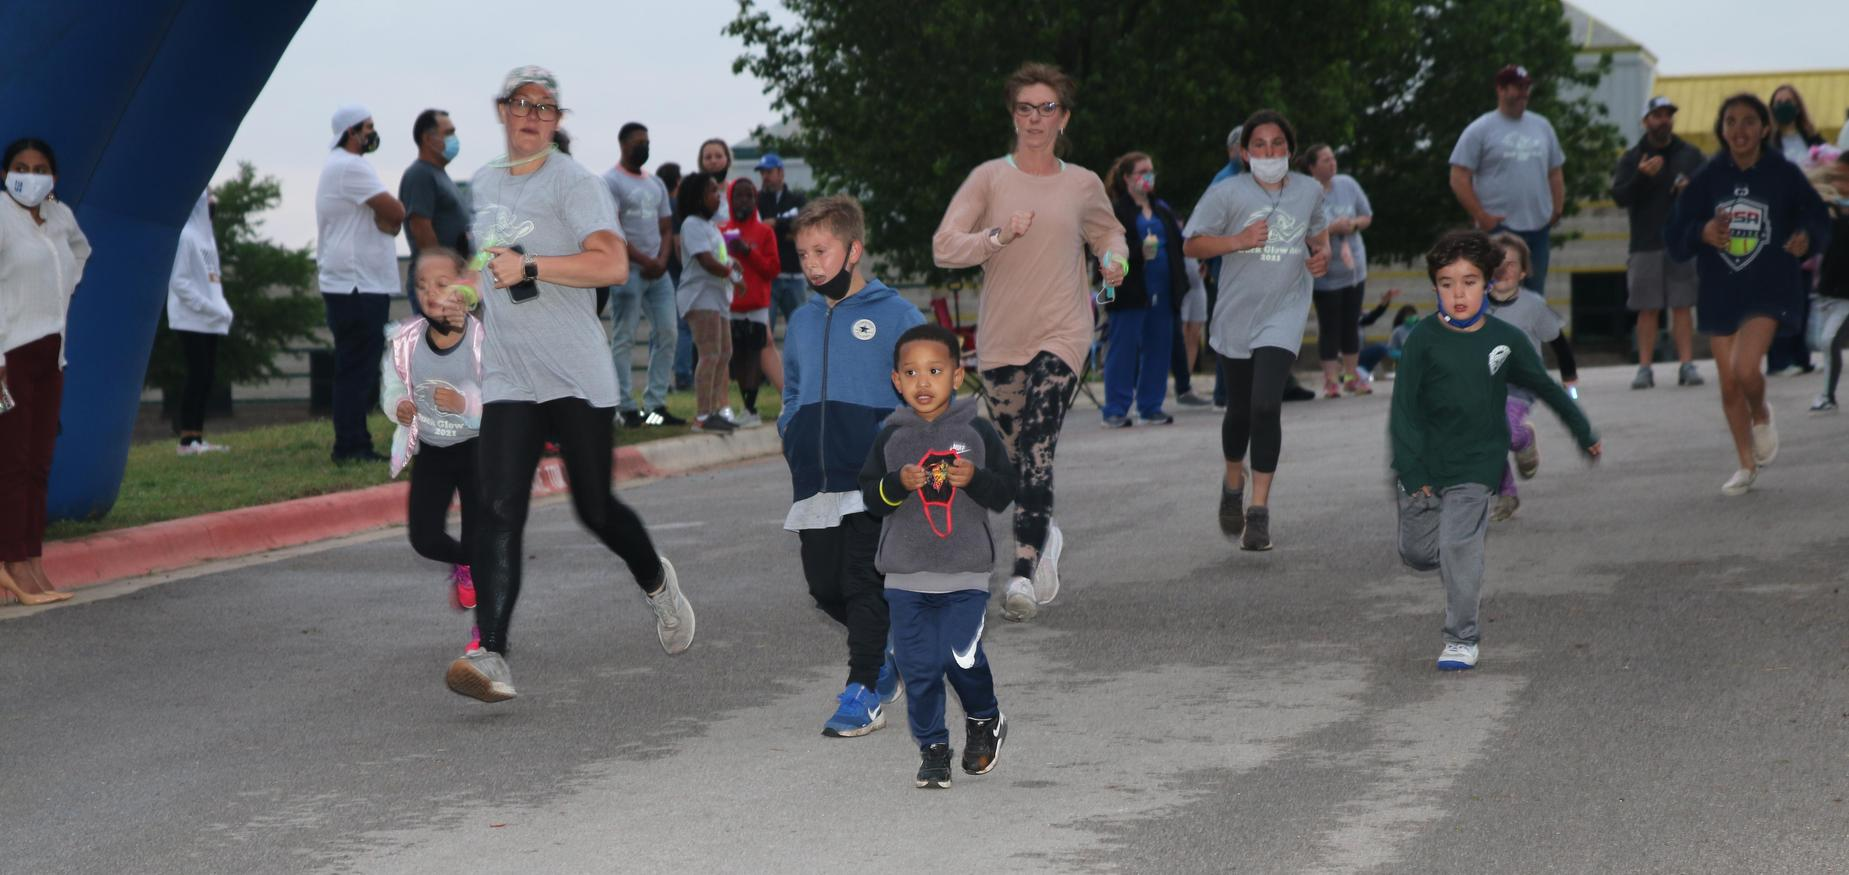 Families running at the school.